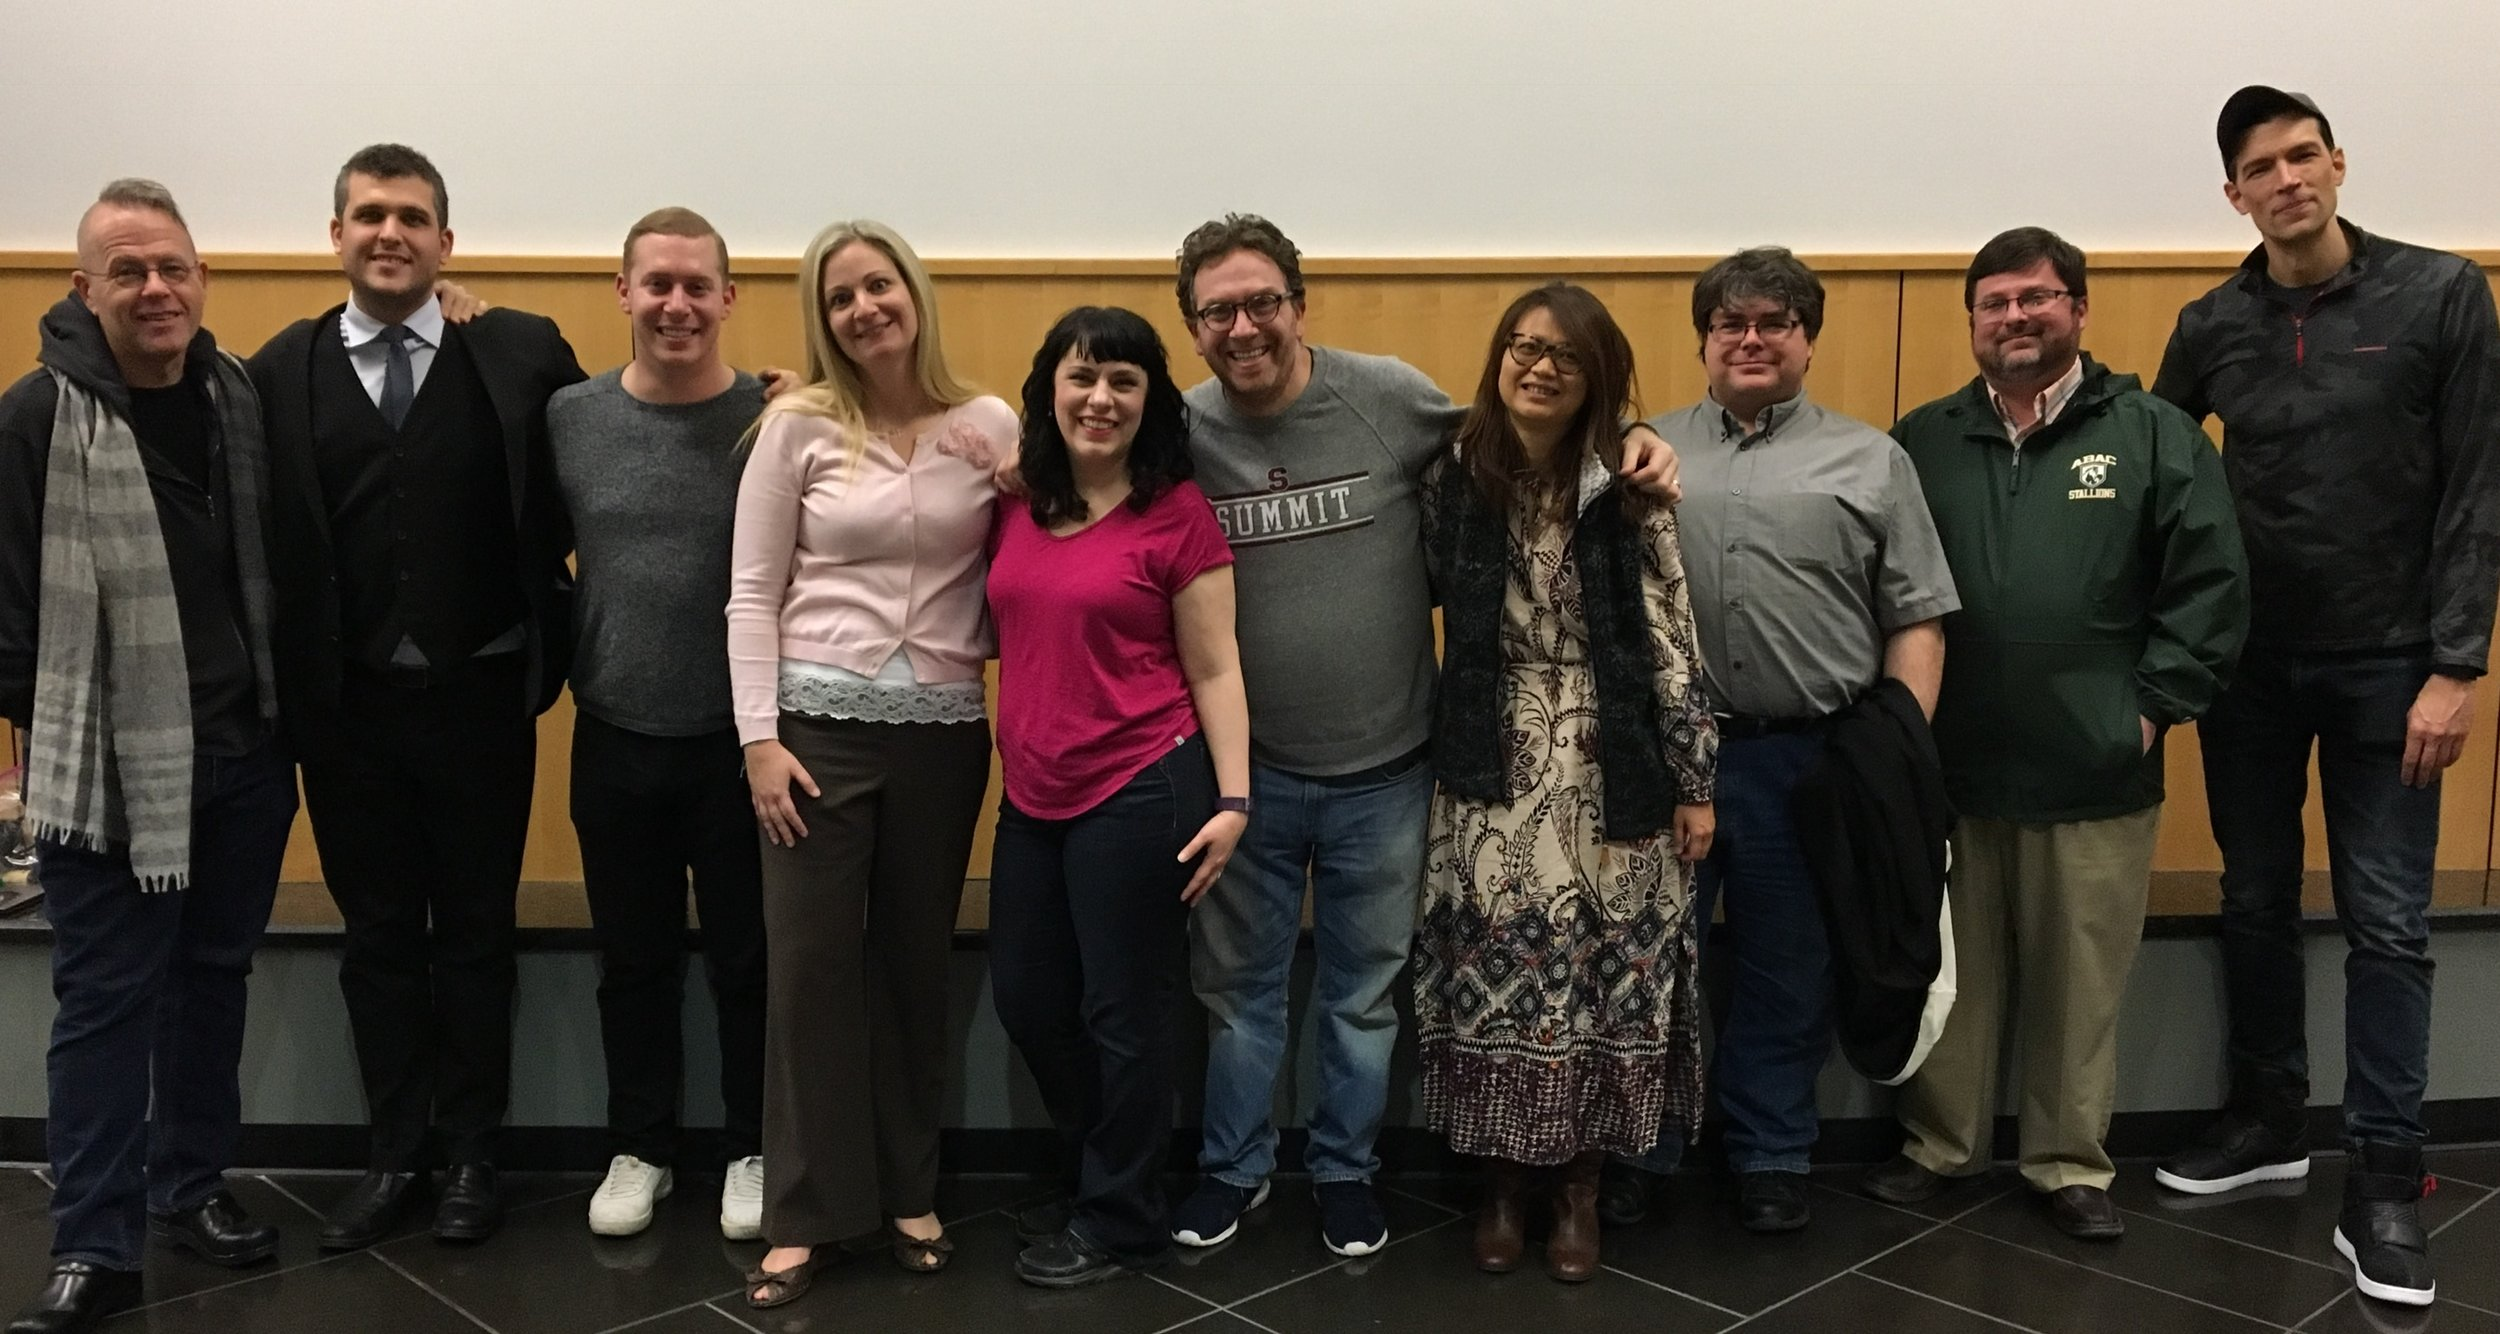 The cast and crew (including author Greg Triggs on the far left) with member of the Carter Foundation